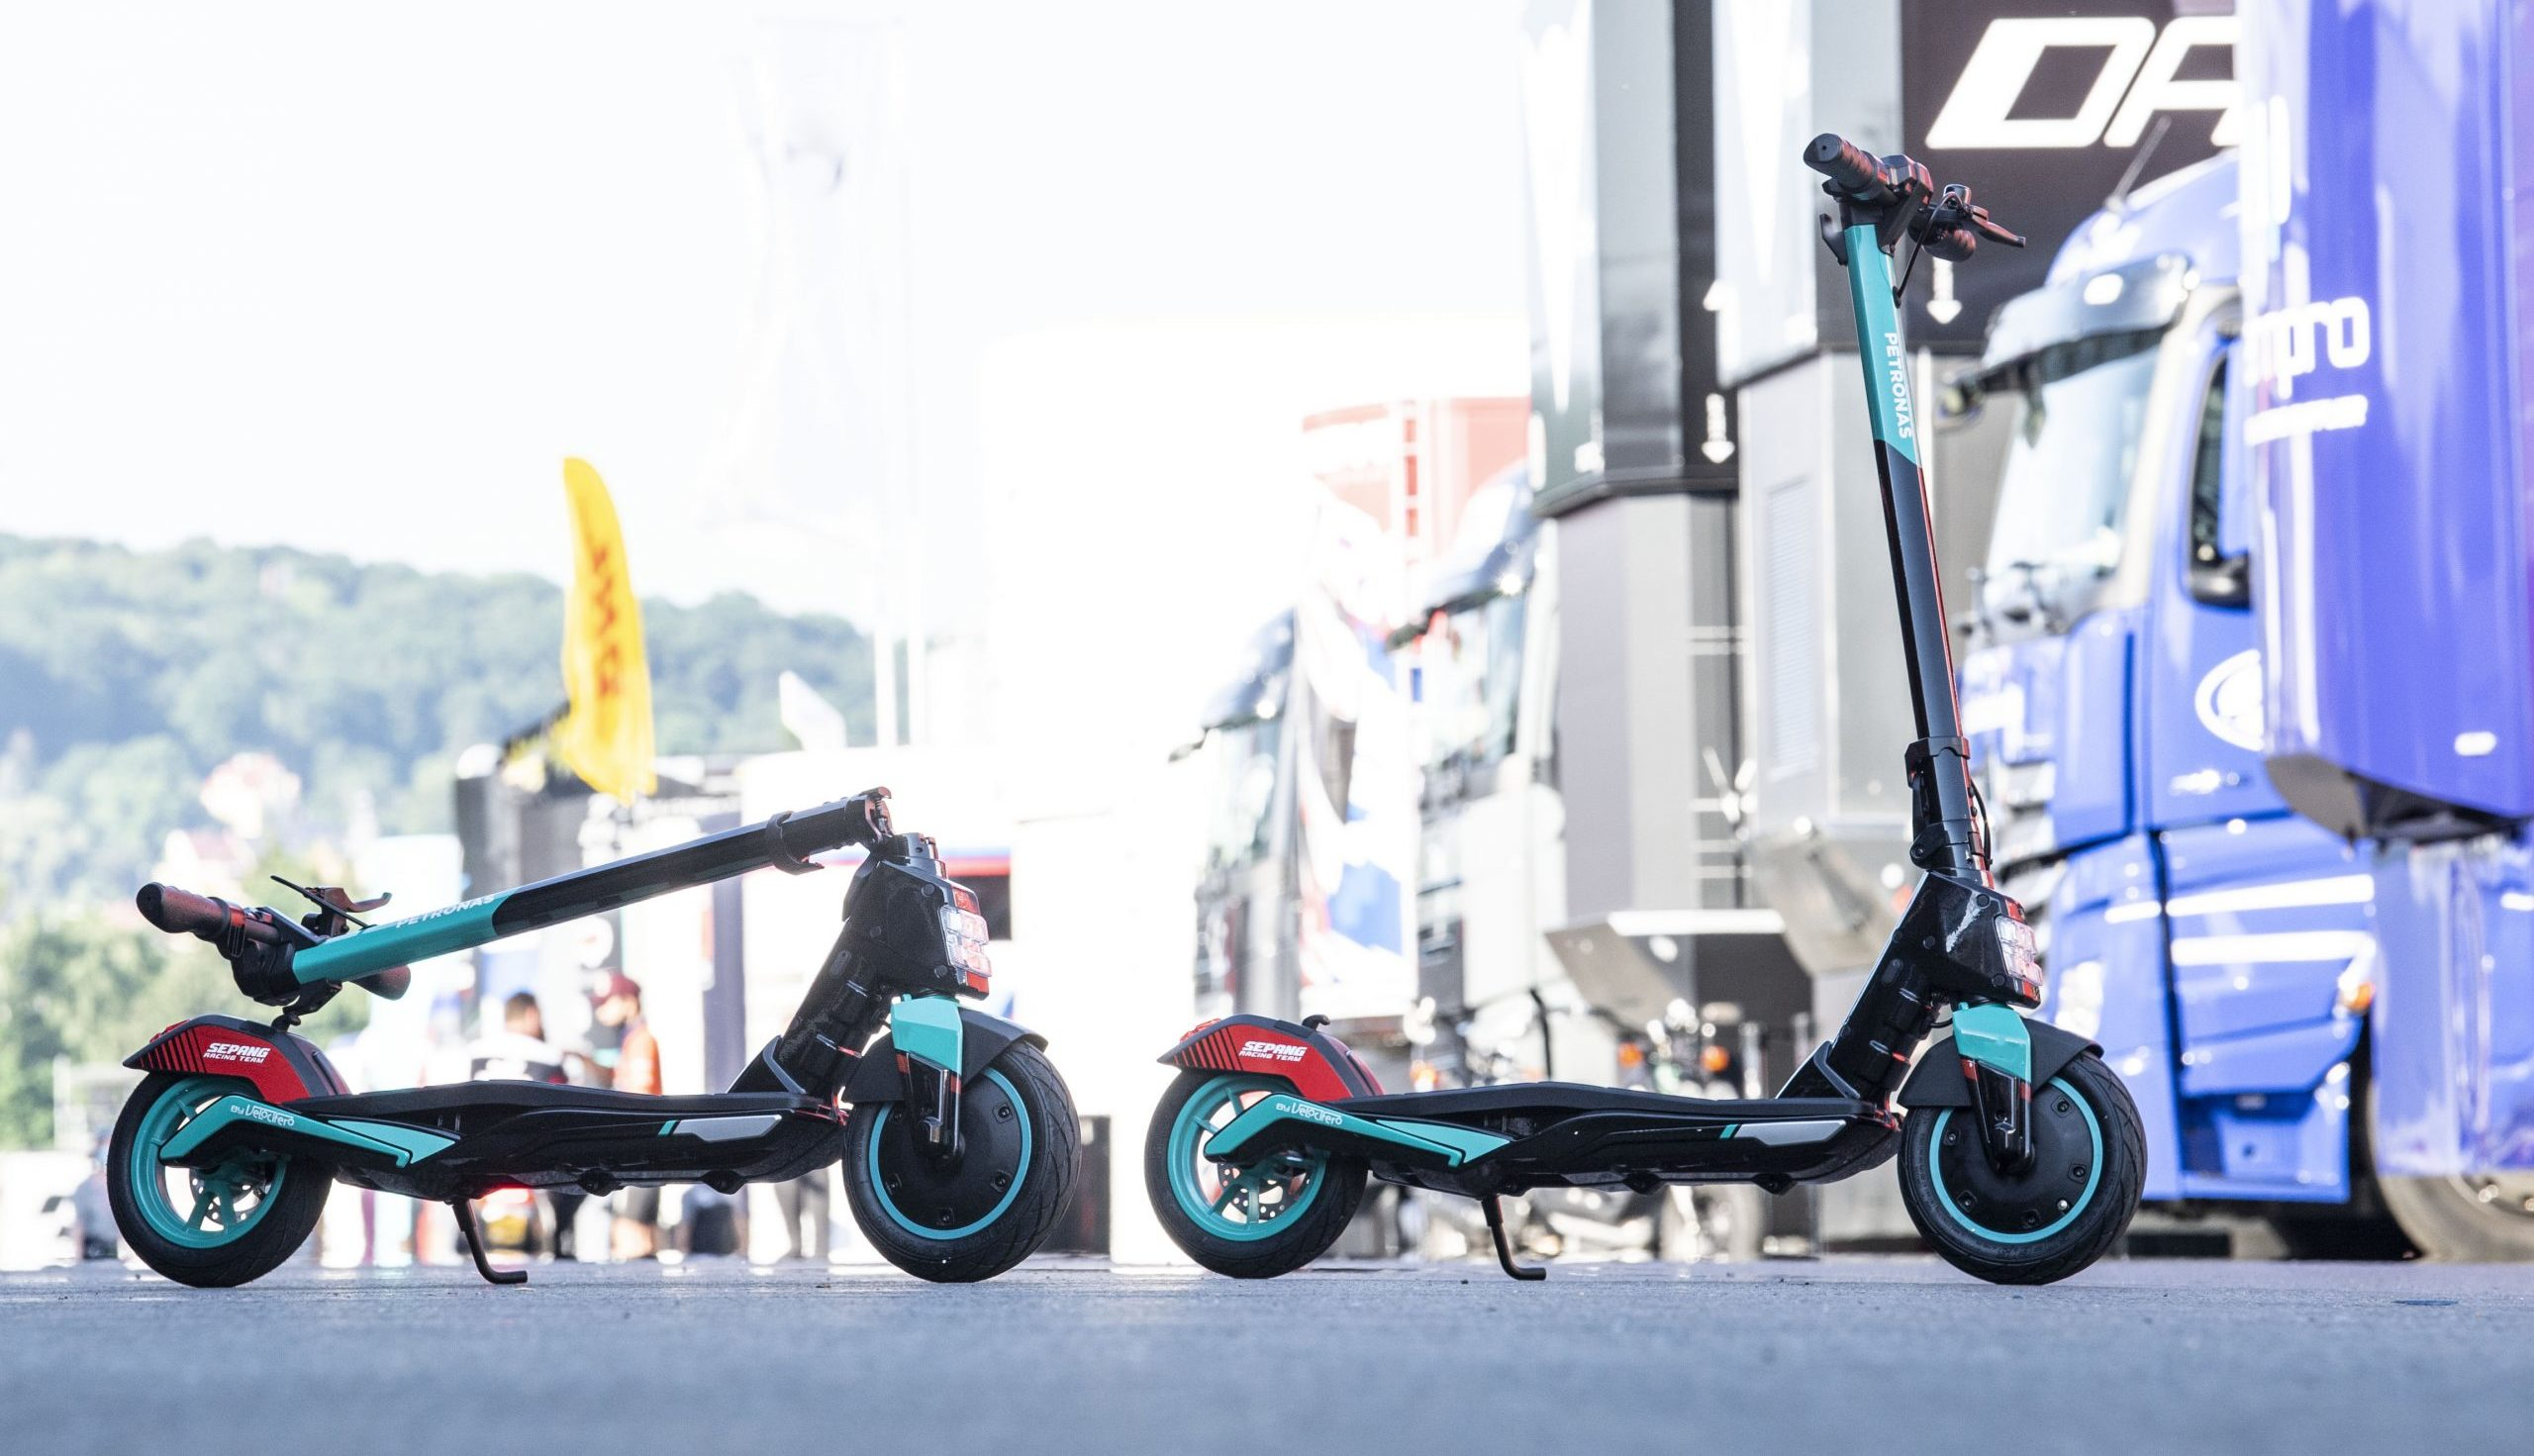 The Petronas SRT Electric Kick Scooter Merges MotoGP With E-Mobility